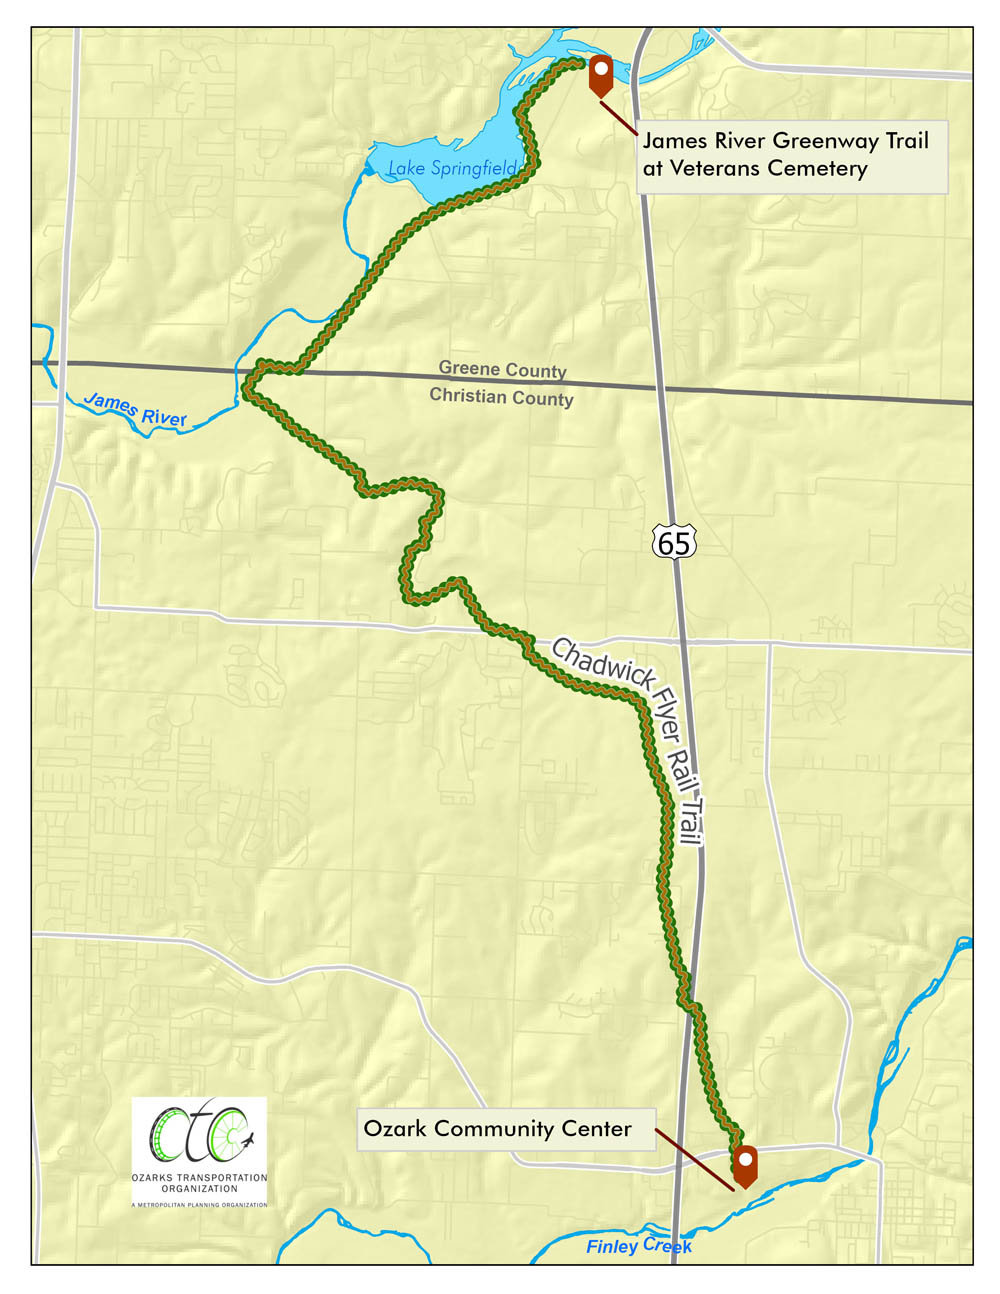 MAPPING THE COURSE: A steering committee is focused on the main spine of the Chadwick Flyer Rail Trail, where it would connect with the James River Greenway to the Ozark Community Center.